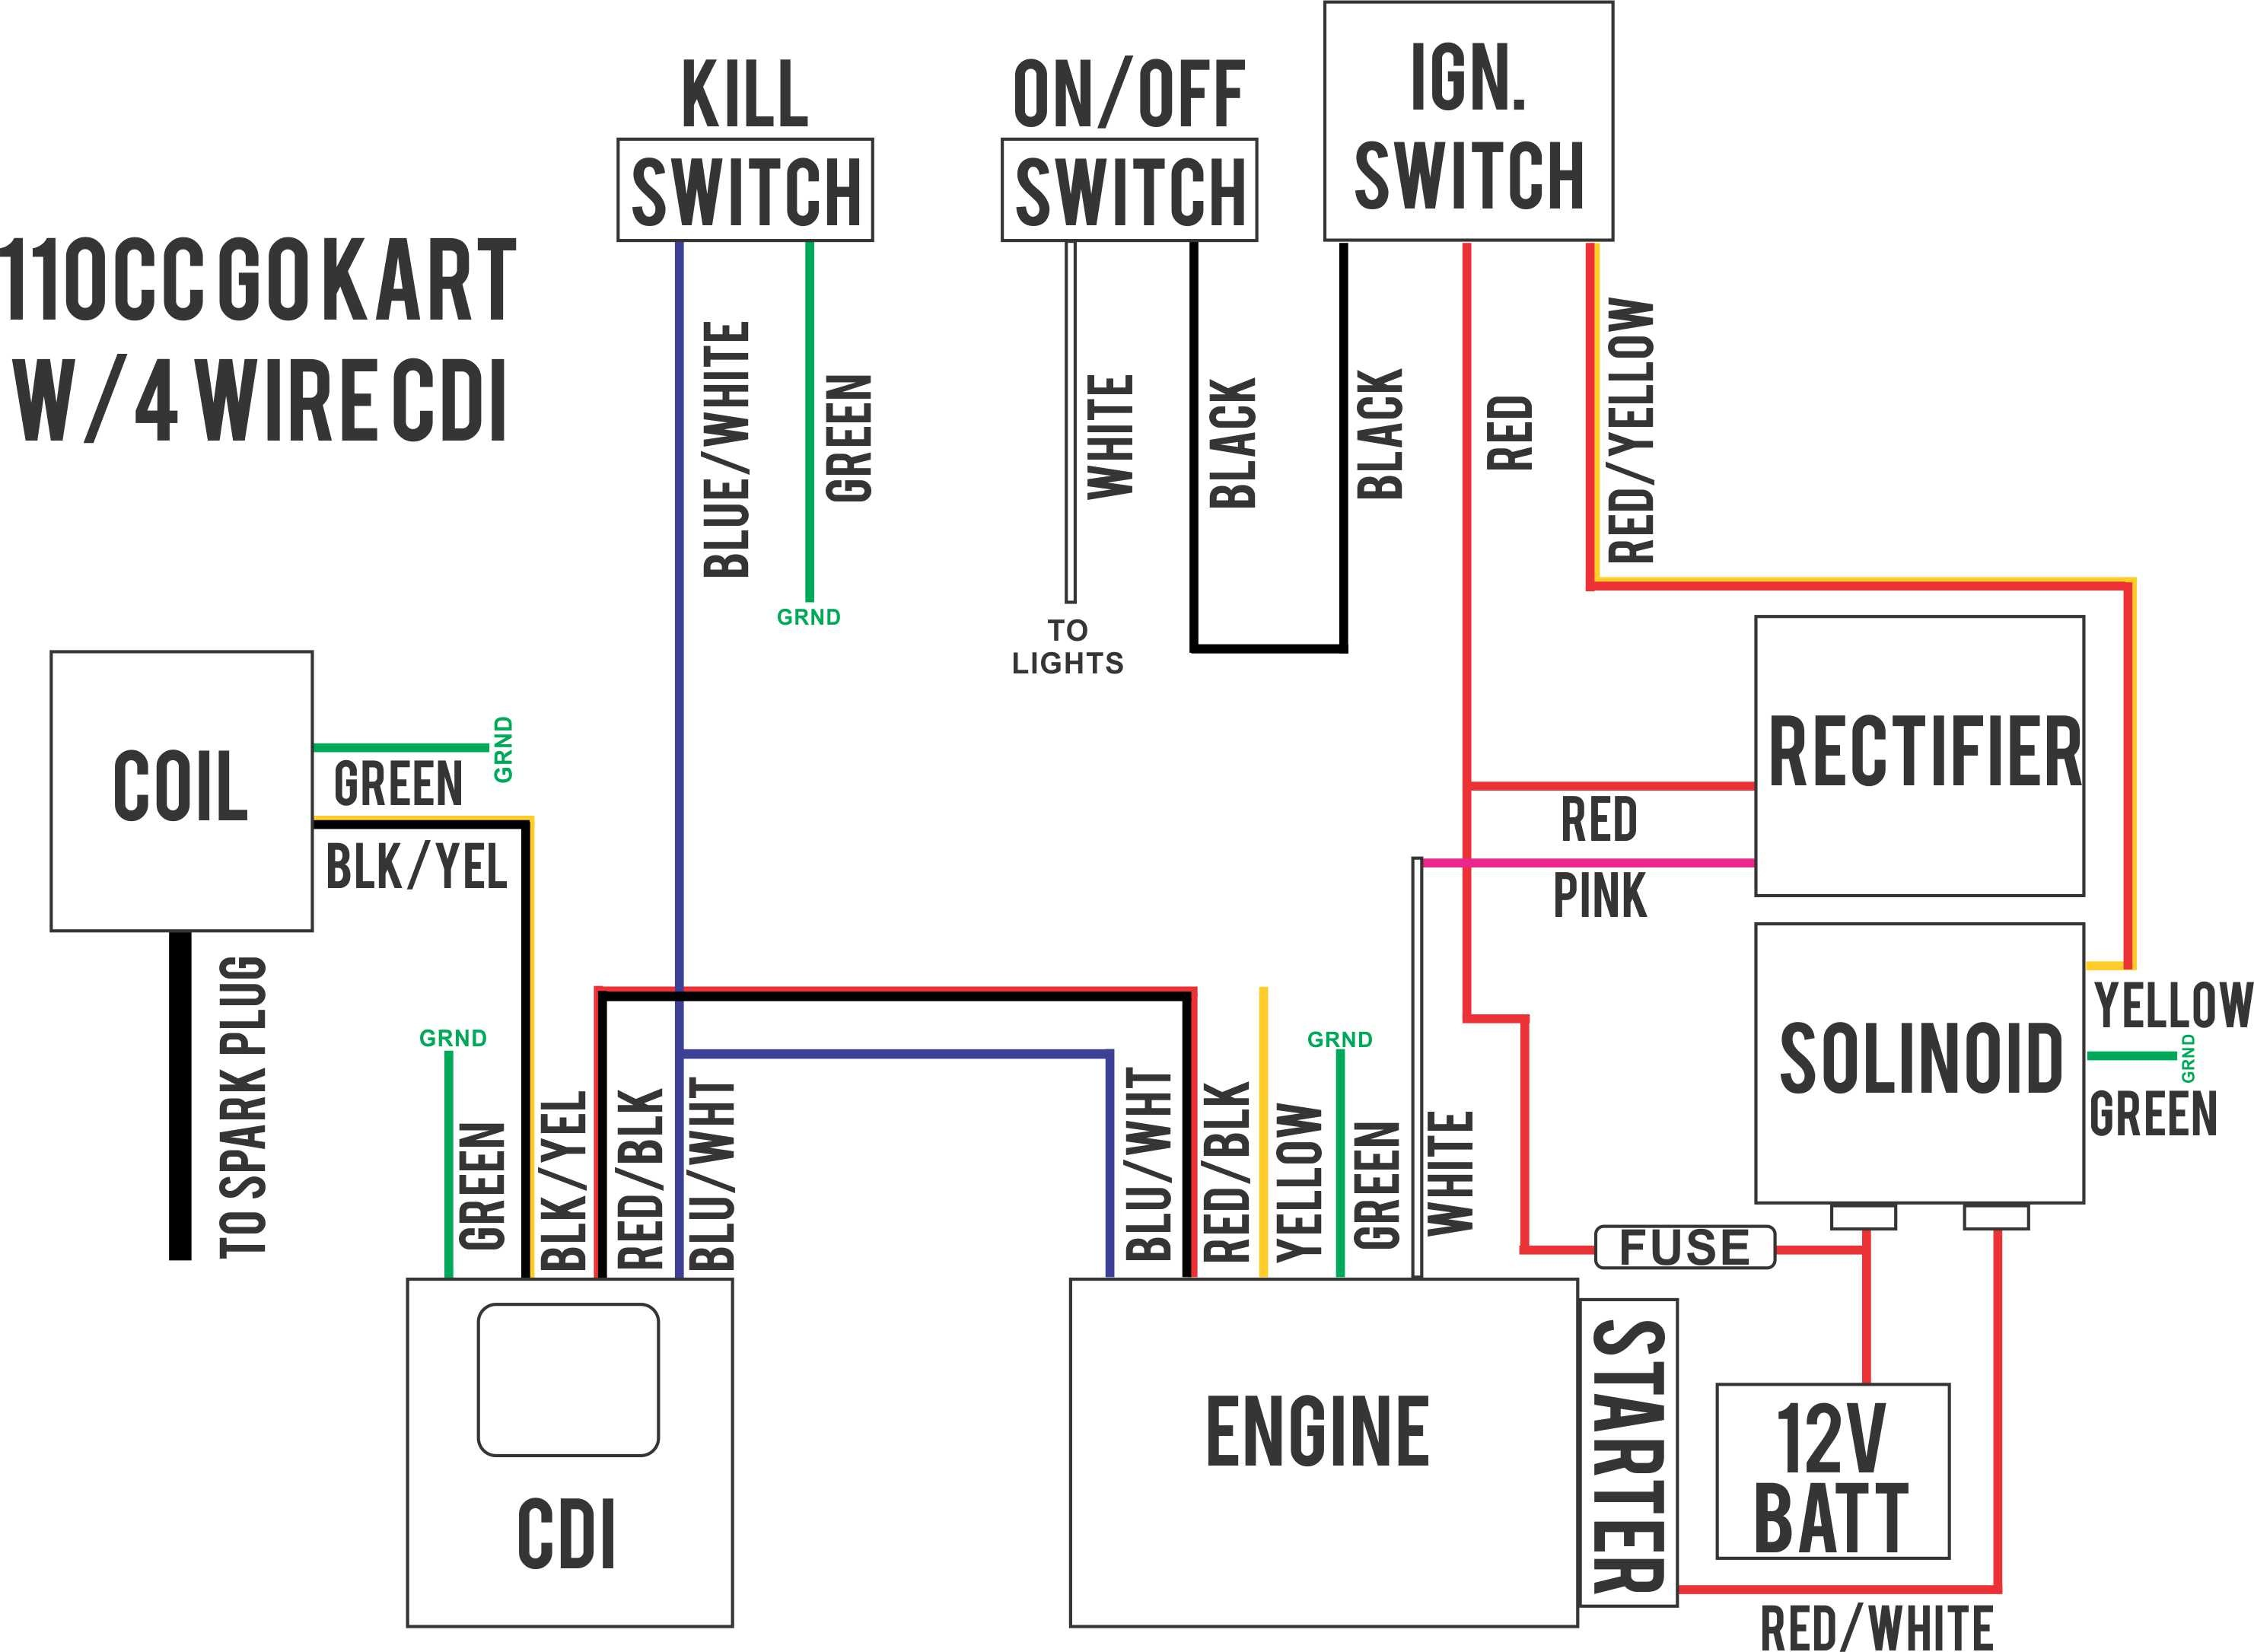 atc engine diagram wire management \u0026 wiring diagram Peace Sports 125Cc ATV Wiring Diagram